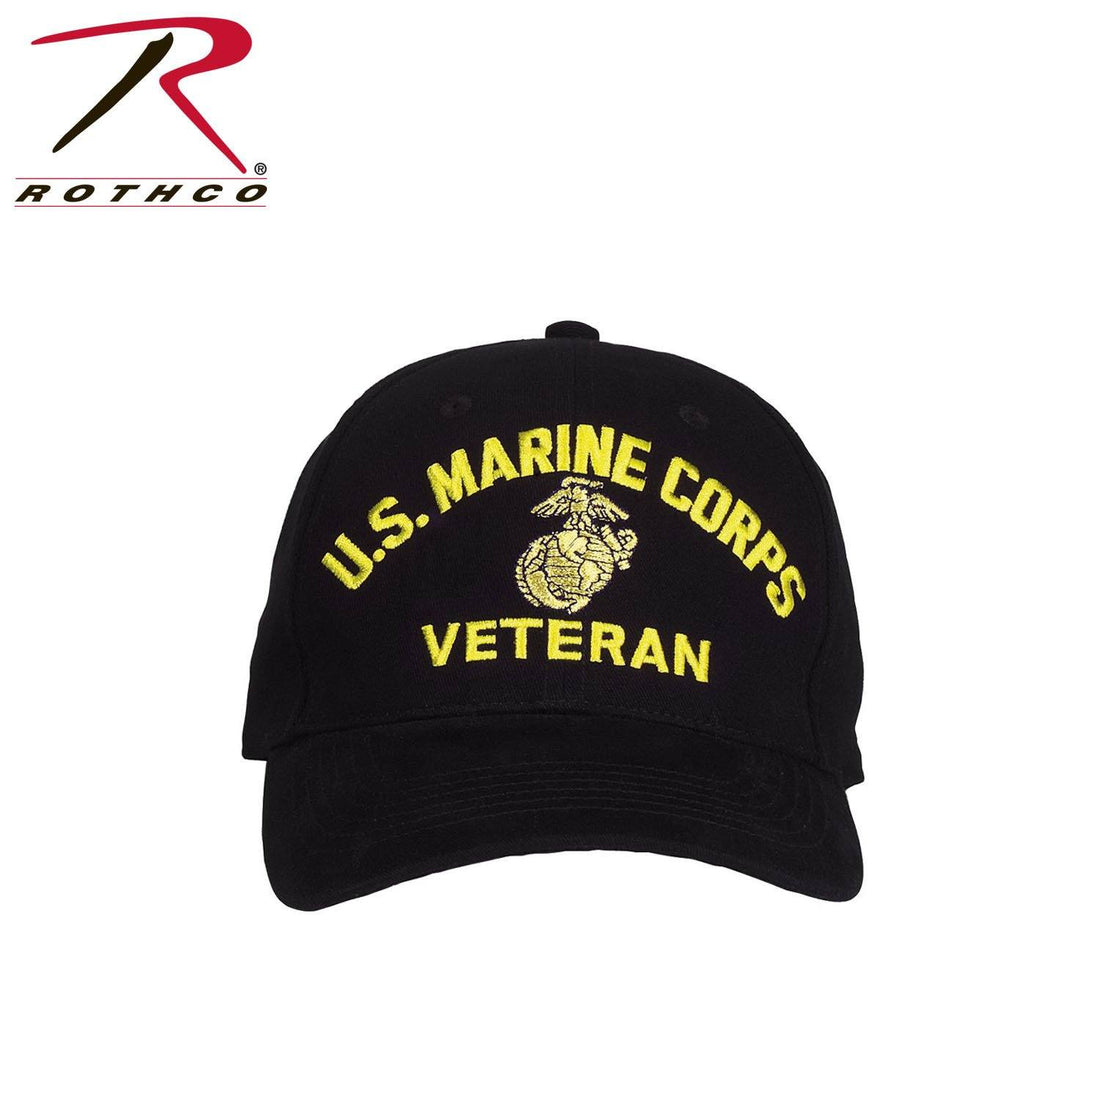 ROTHCO US MARINE CORPS VETERAN WITH EGA - Marine Corps Direct